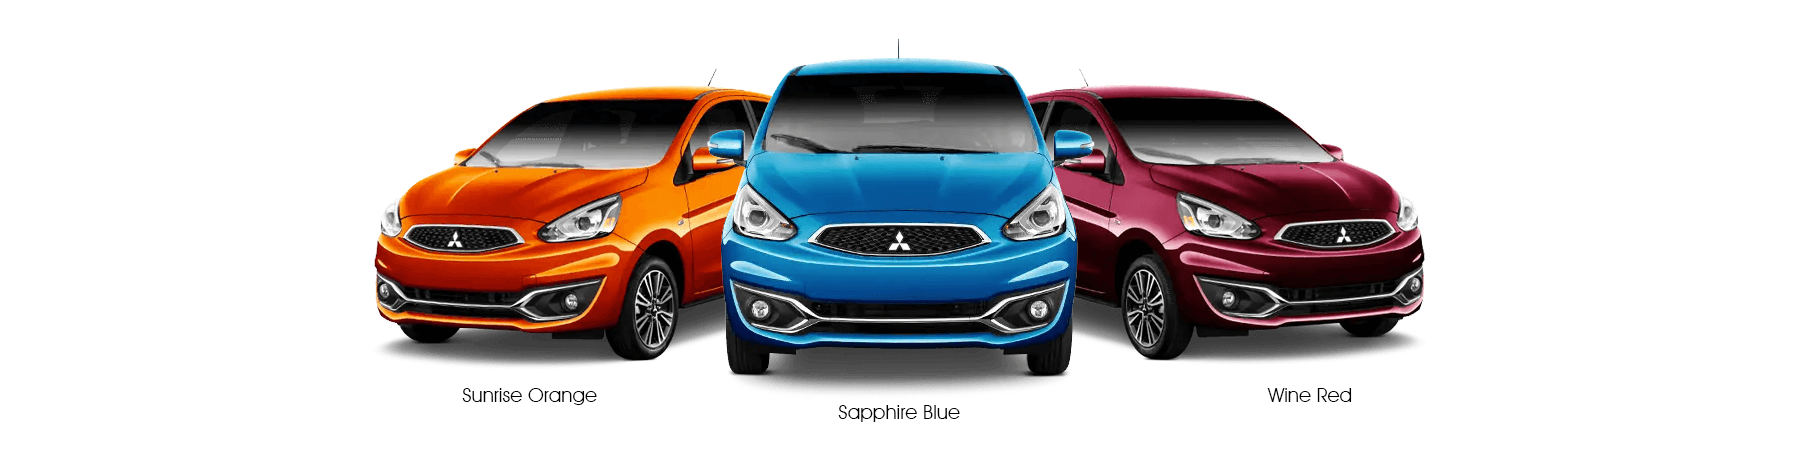 2020 Mitsubishi Mirage Colors Lineup